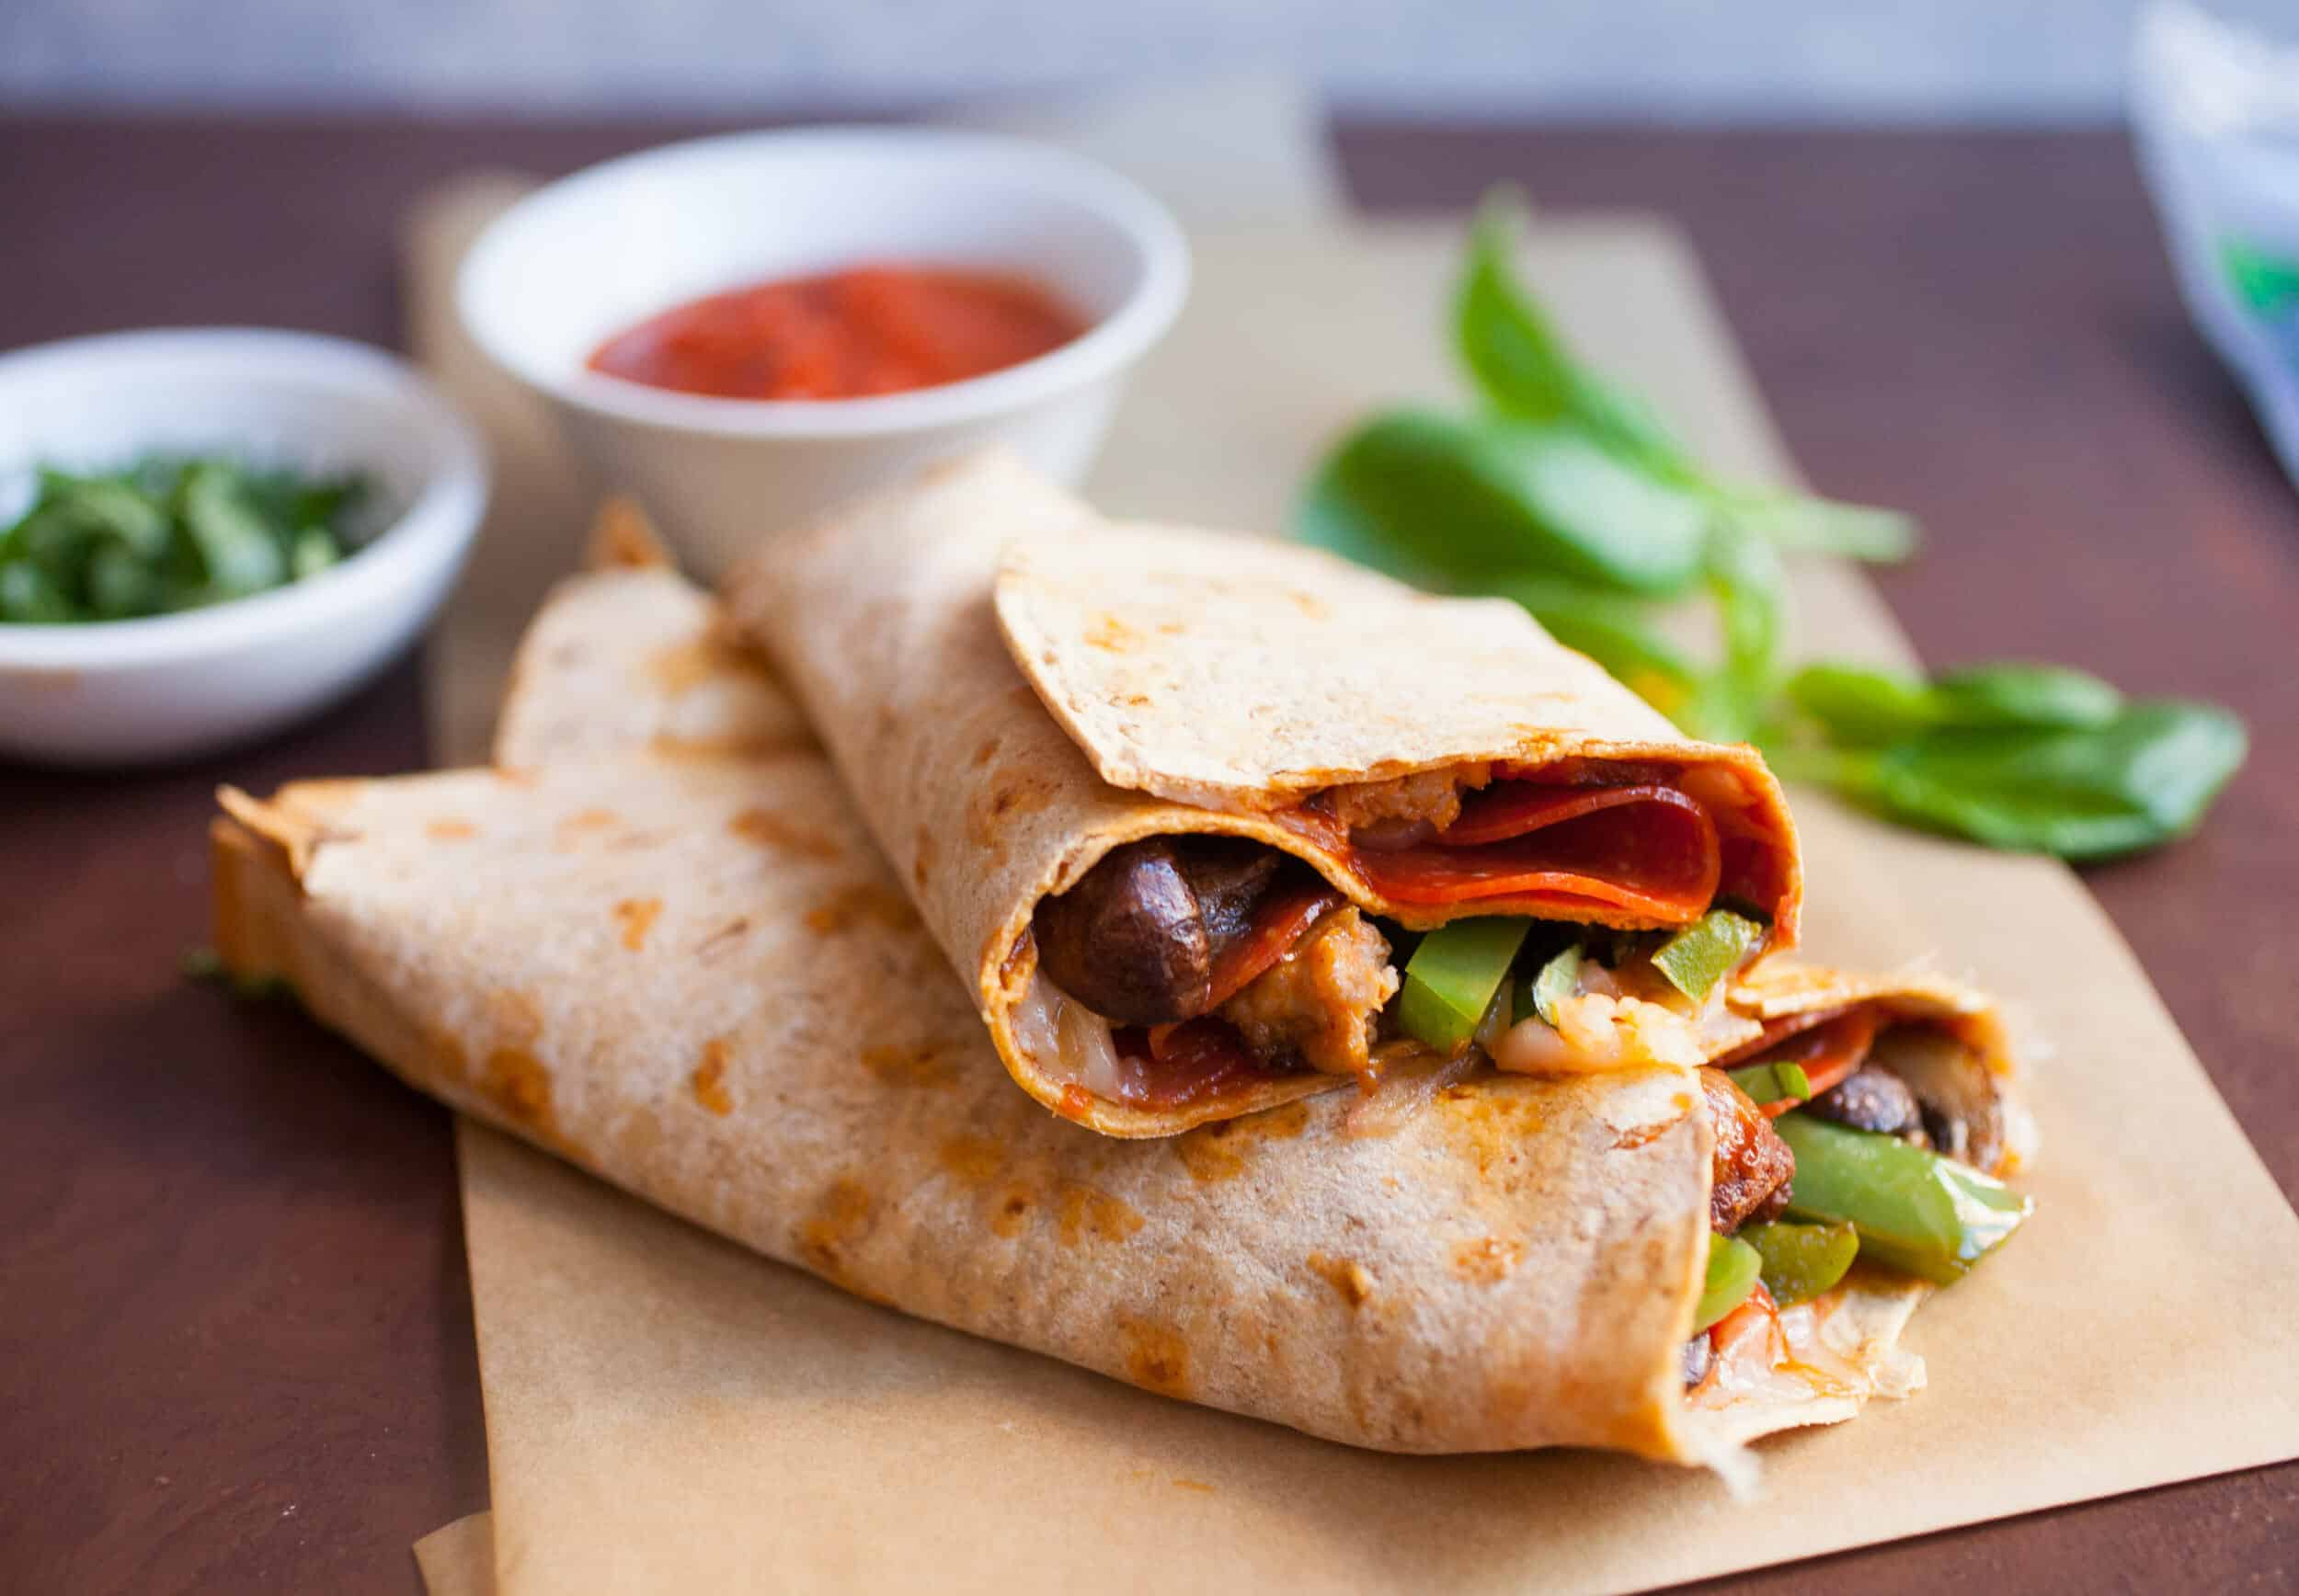 Supreme Pizza Wraps: Everything you love in a Supreme pizza except toned down a bit for wrap size. Delicious flavors and hand held! | macheesmo.com